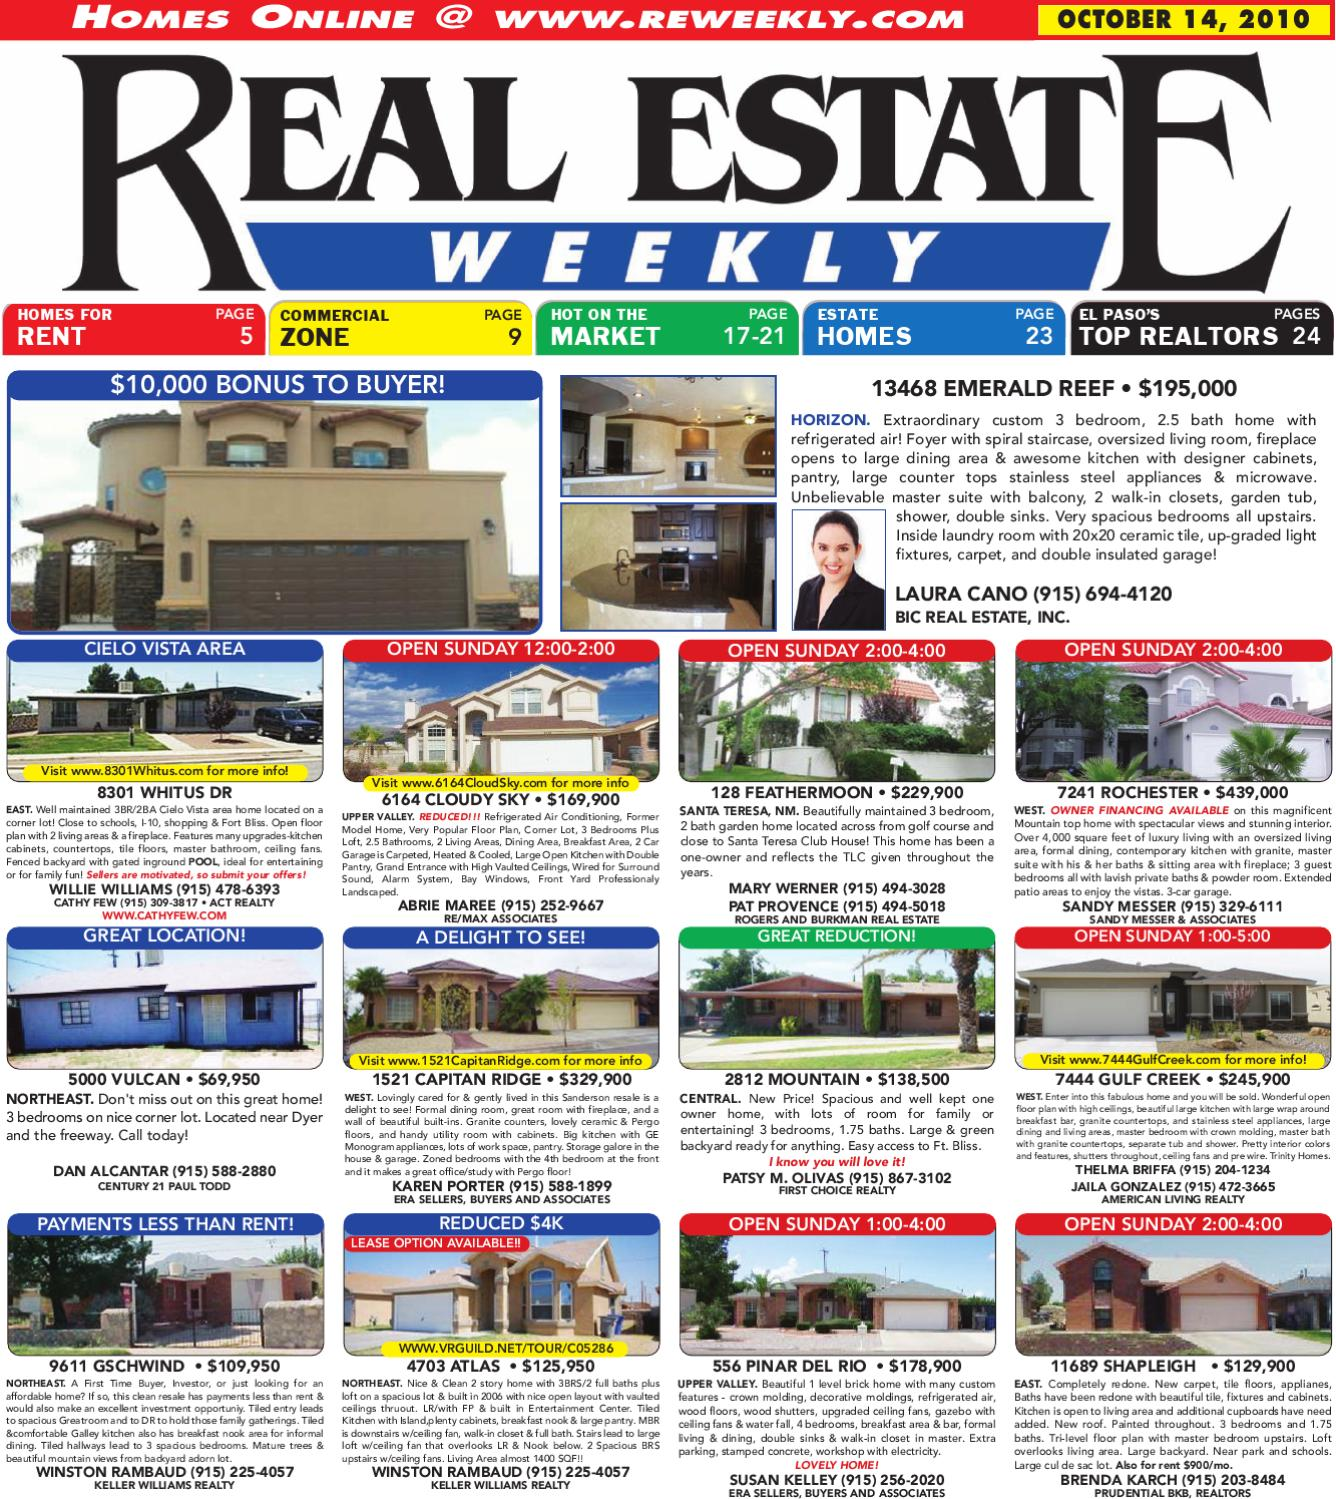 10 14 2010 real estate weekly by mesa publishing corp blue sky